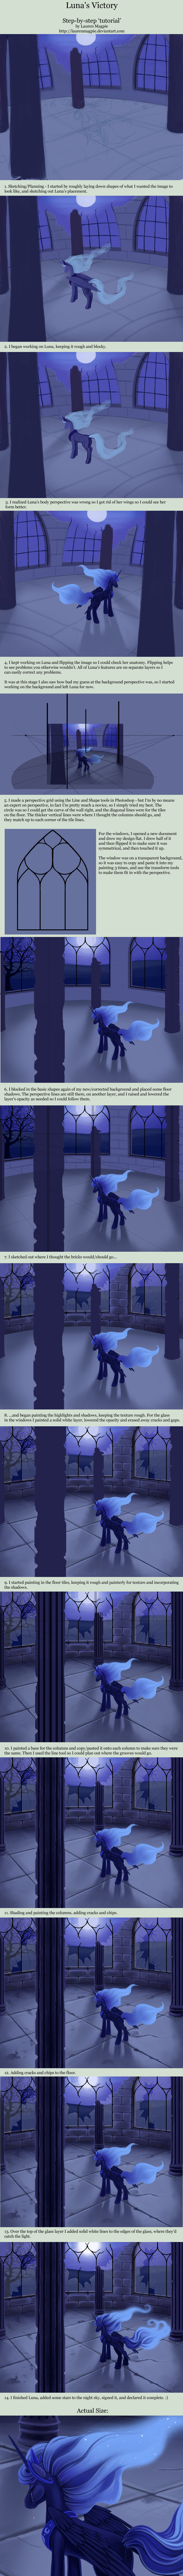 Step-by-step: Luna's Victory by LaurenMagpie